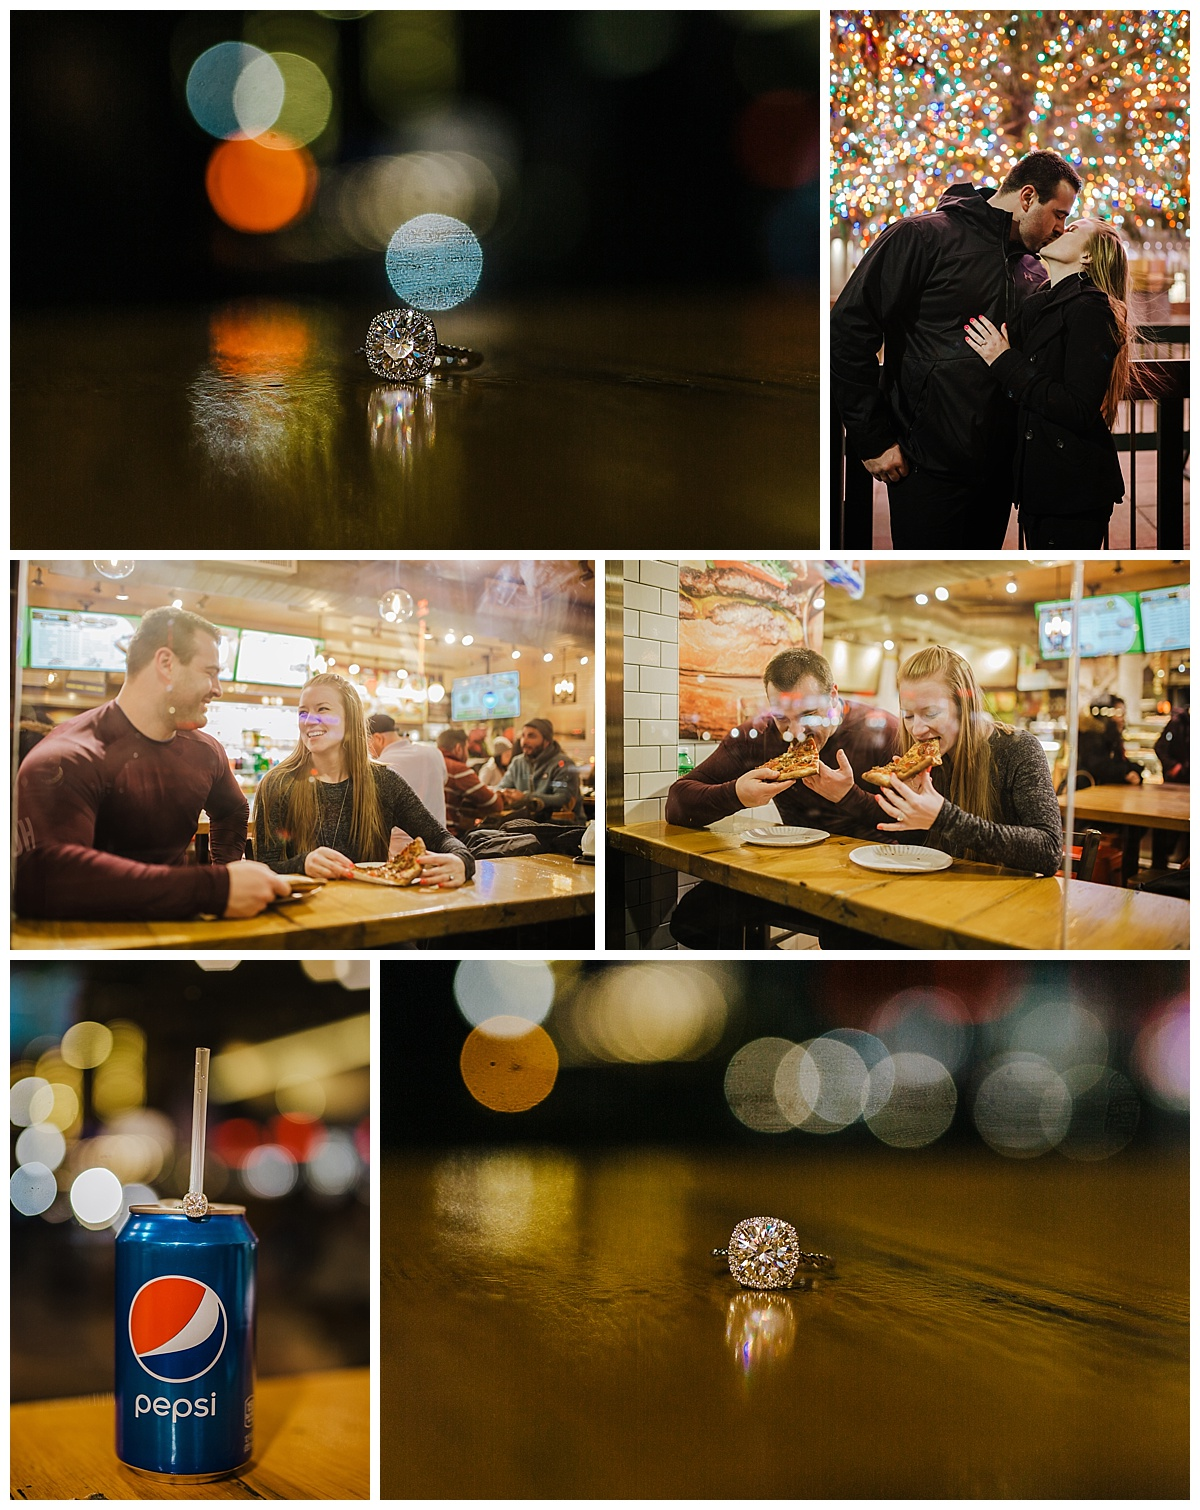 New York City Pizza Shop - NYC Destination Engagement Session - Sara & Tim